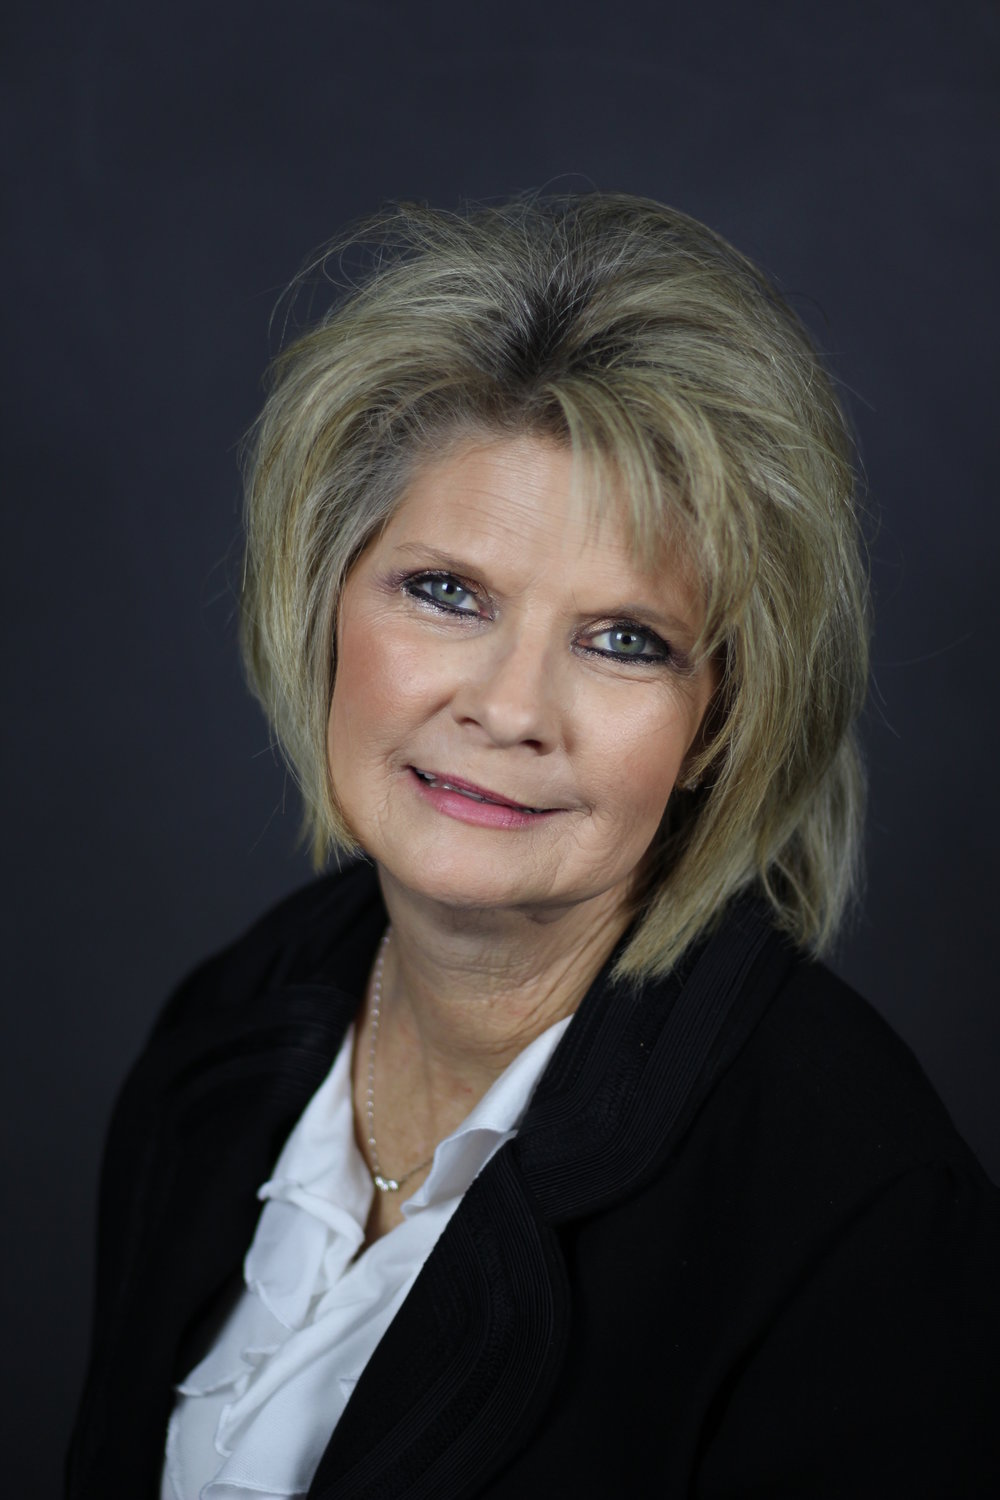 Sharon Murphy - City Clerk